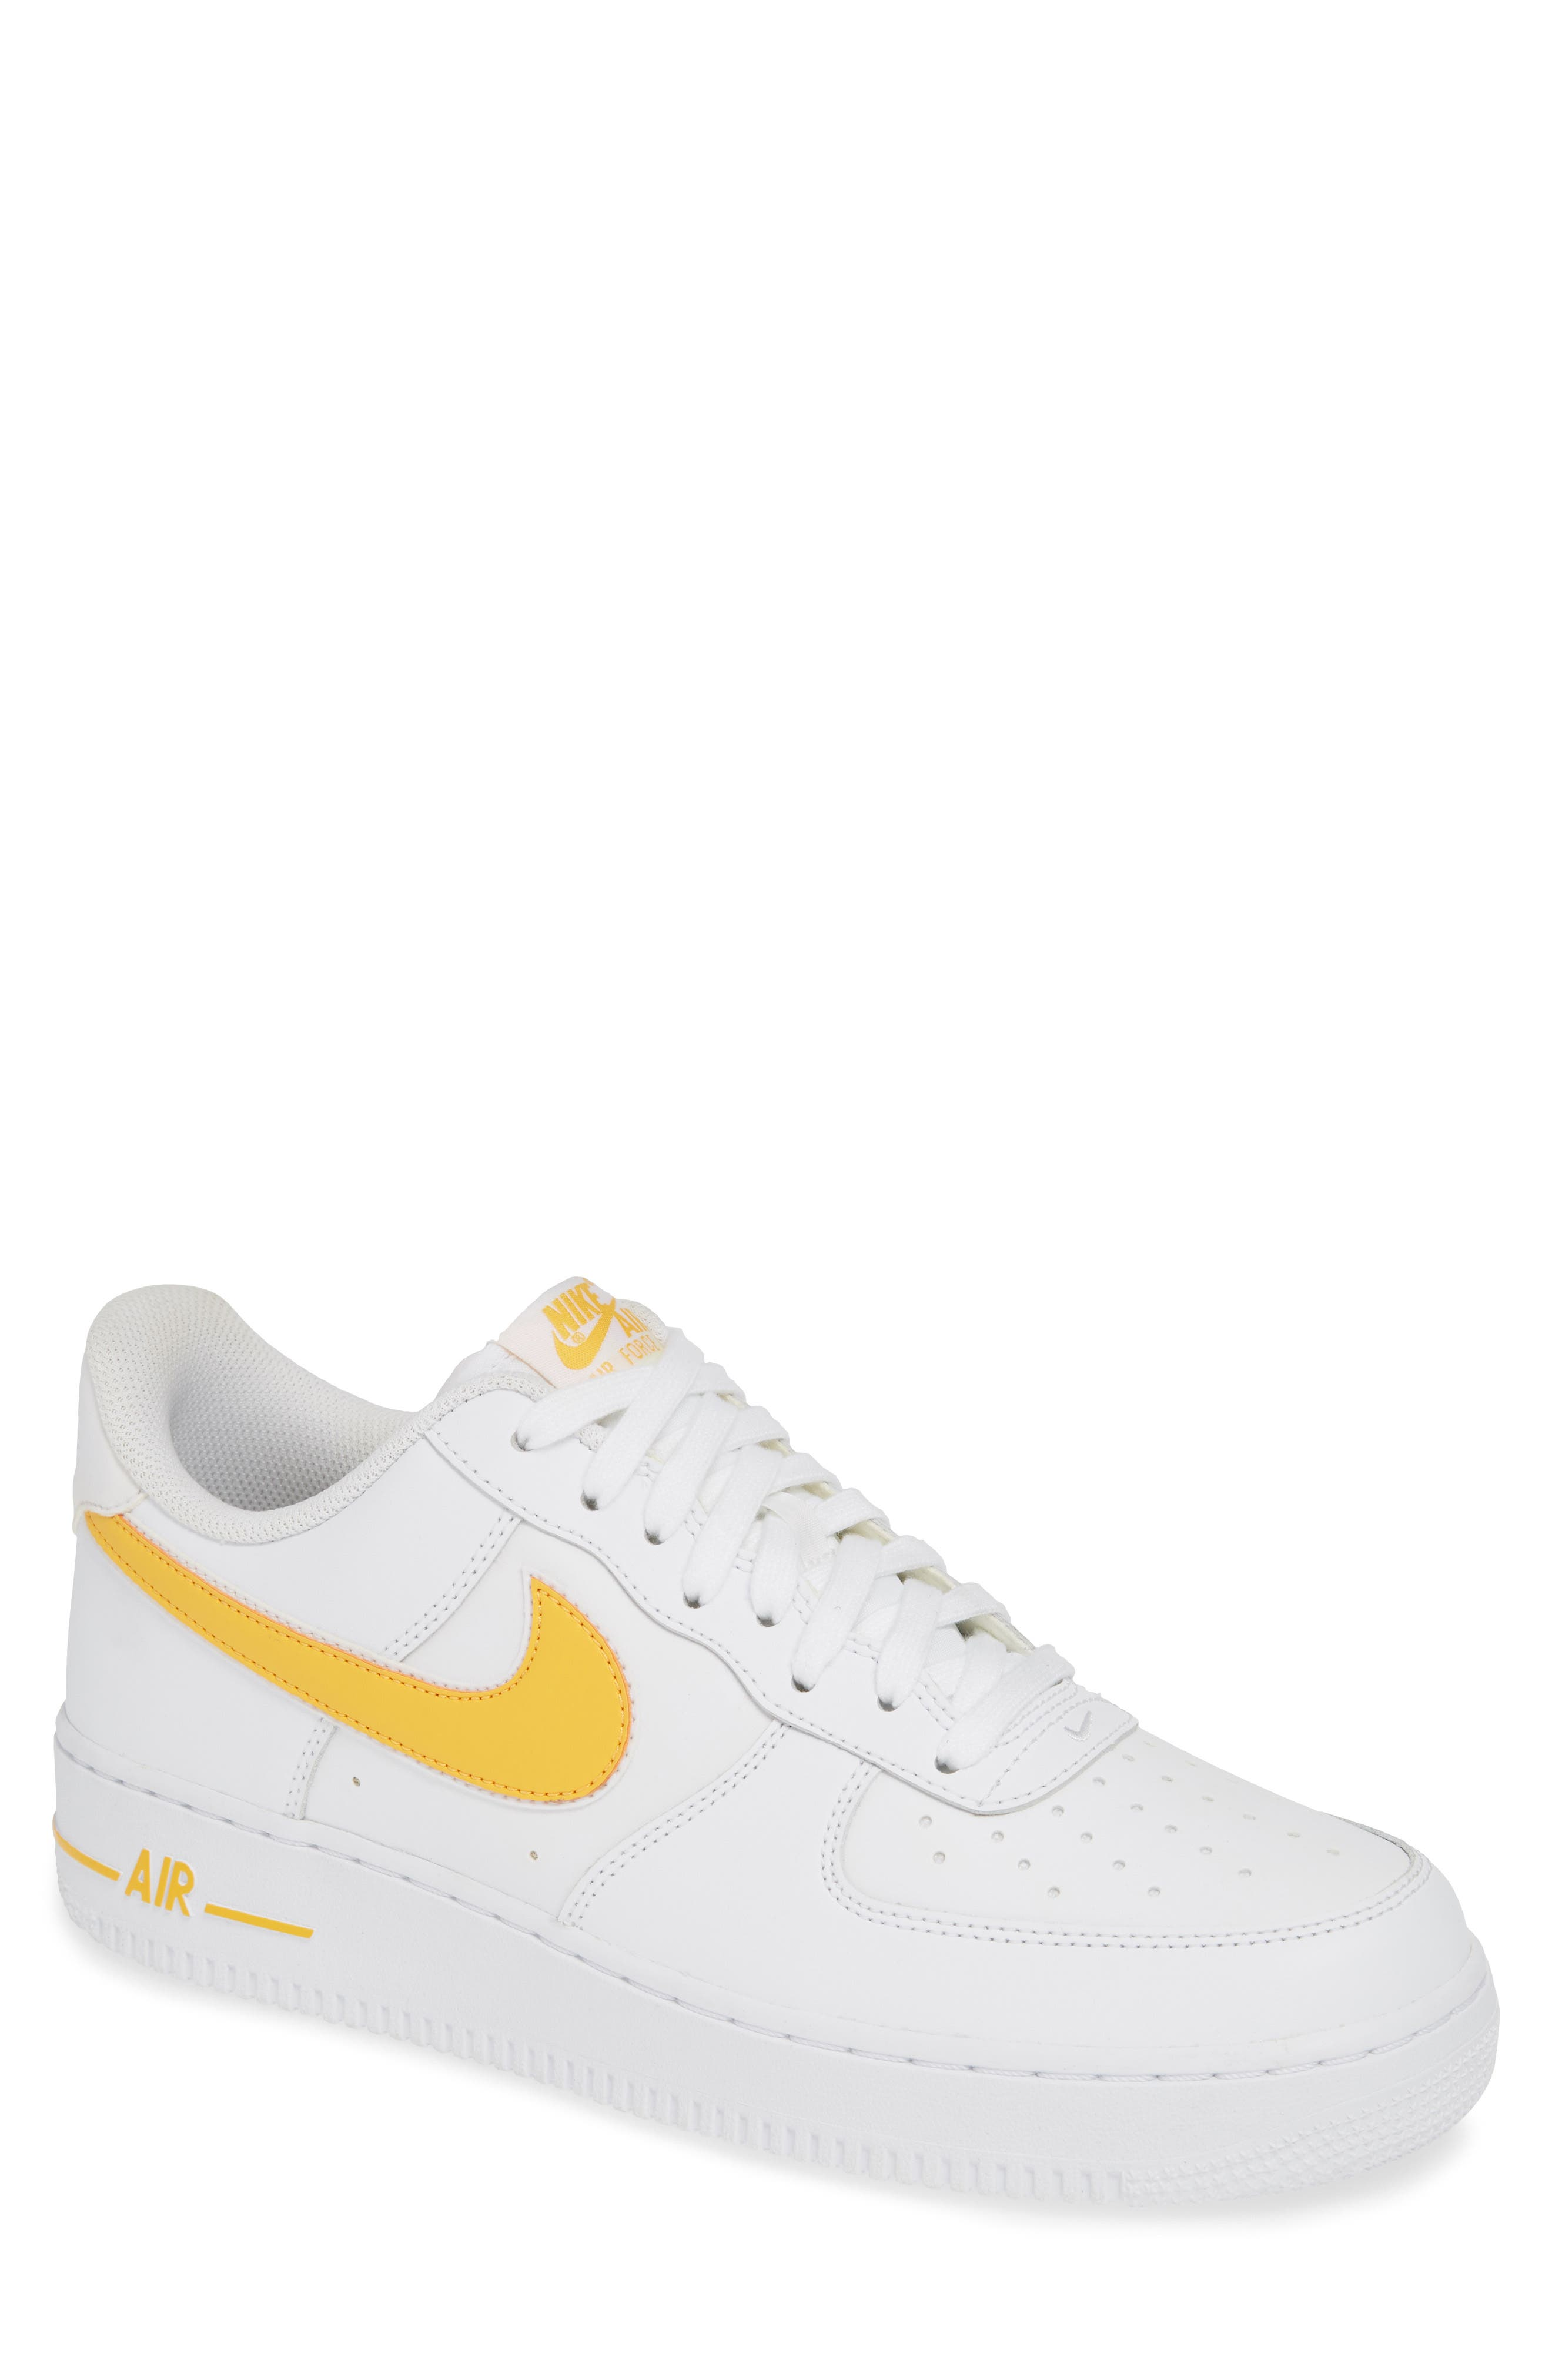 Air Force 1 '07 3 Sneaker, Main, color, WHITE/ UNIVERSITY GOLD